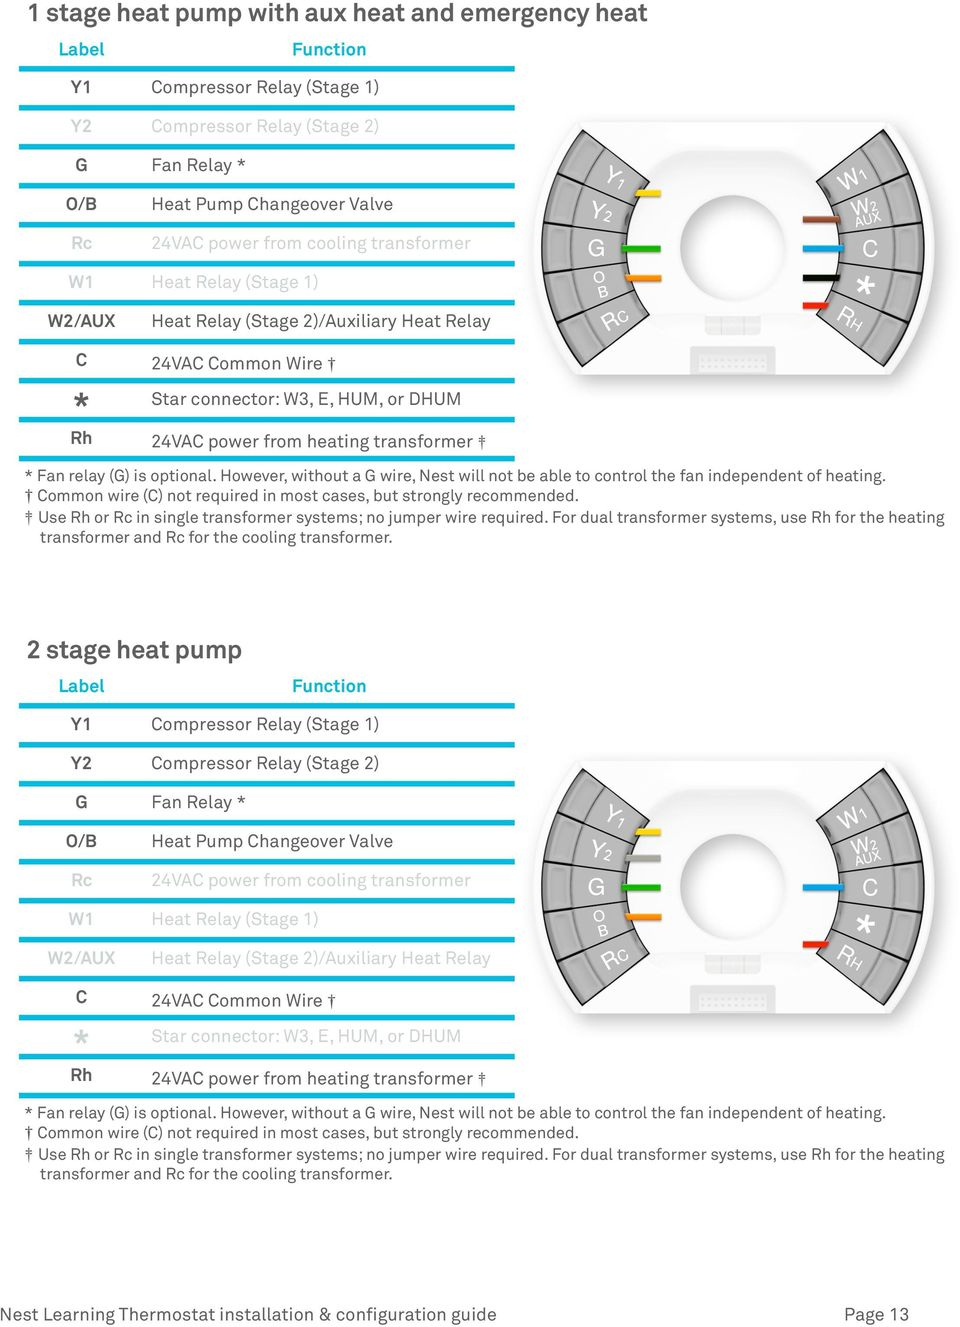 Nest Thermostat Wiring Diagram Heat Pump | Wiring Diagram - Nest E Heat Pump Wiring Diagram